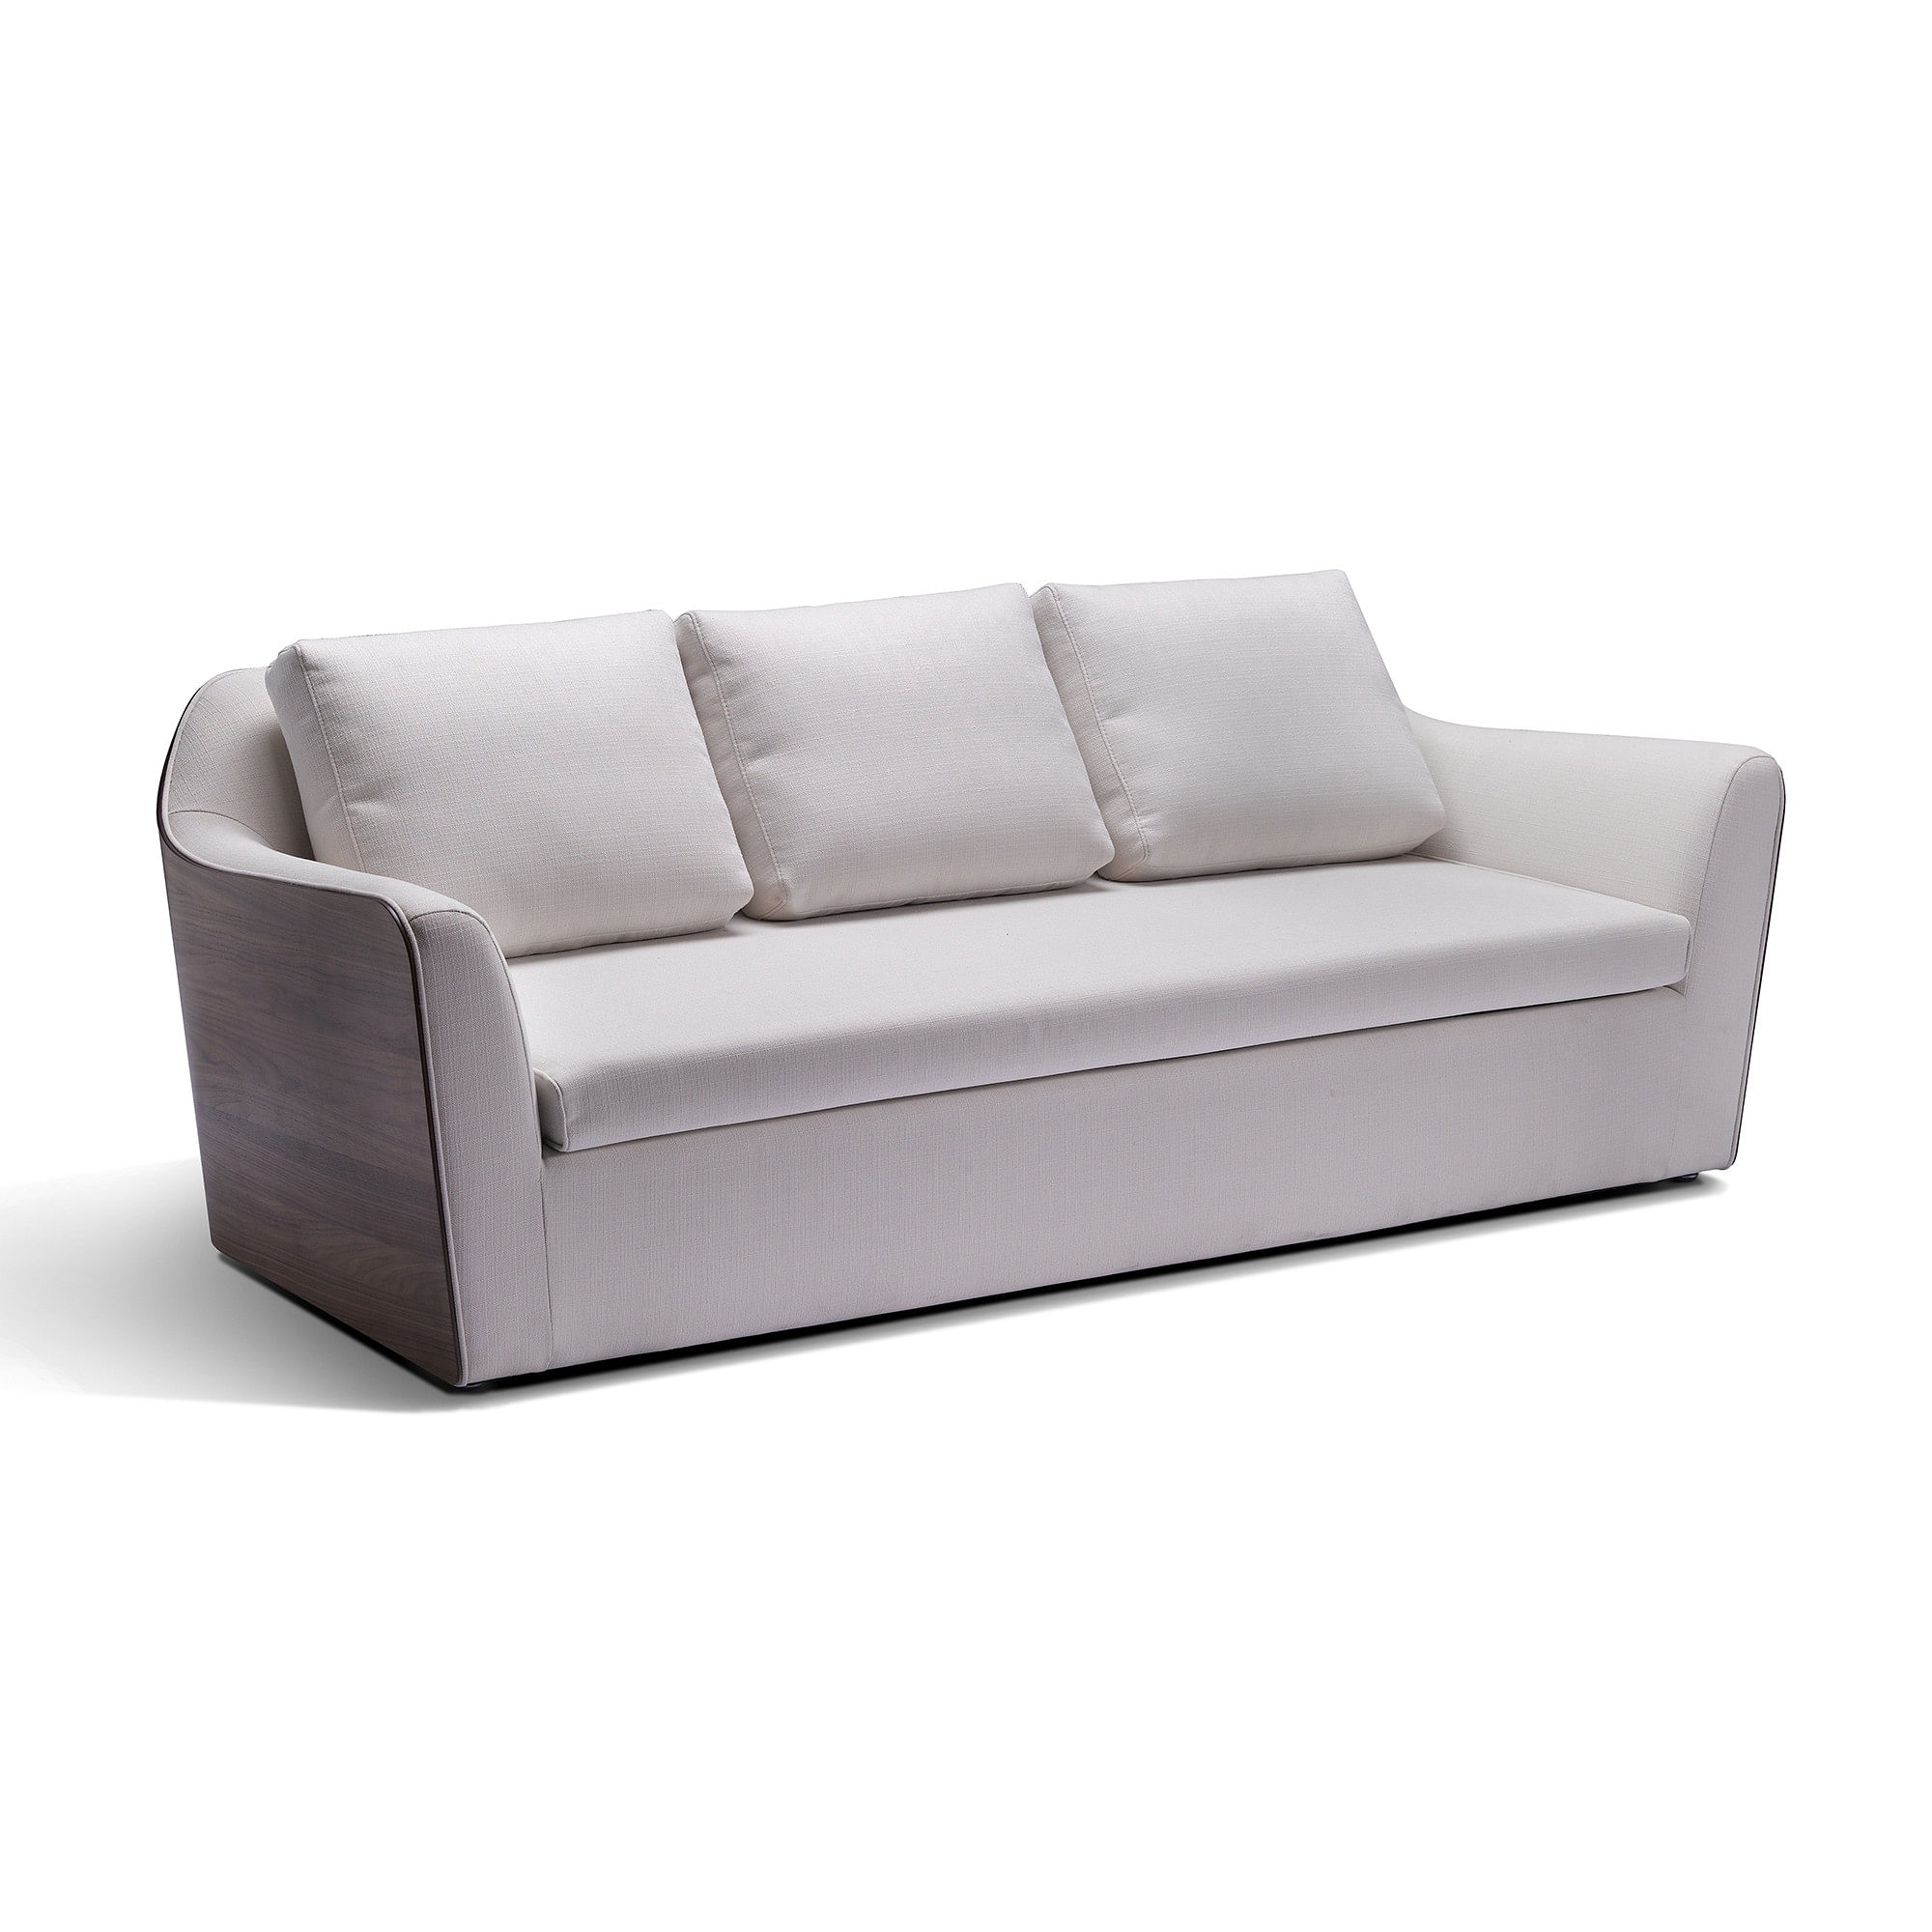 l sectional couch furniture by rooms living contemporary digby pin couches home and shape flexsteel